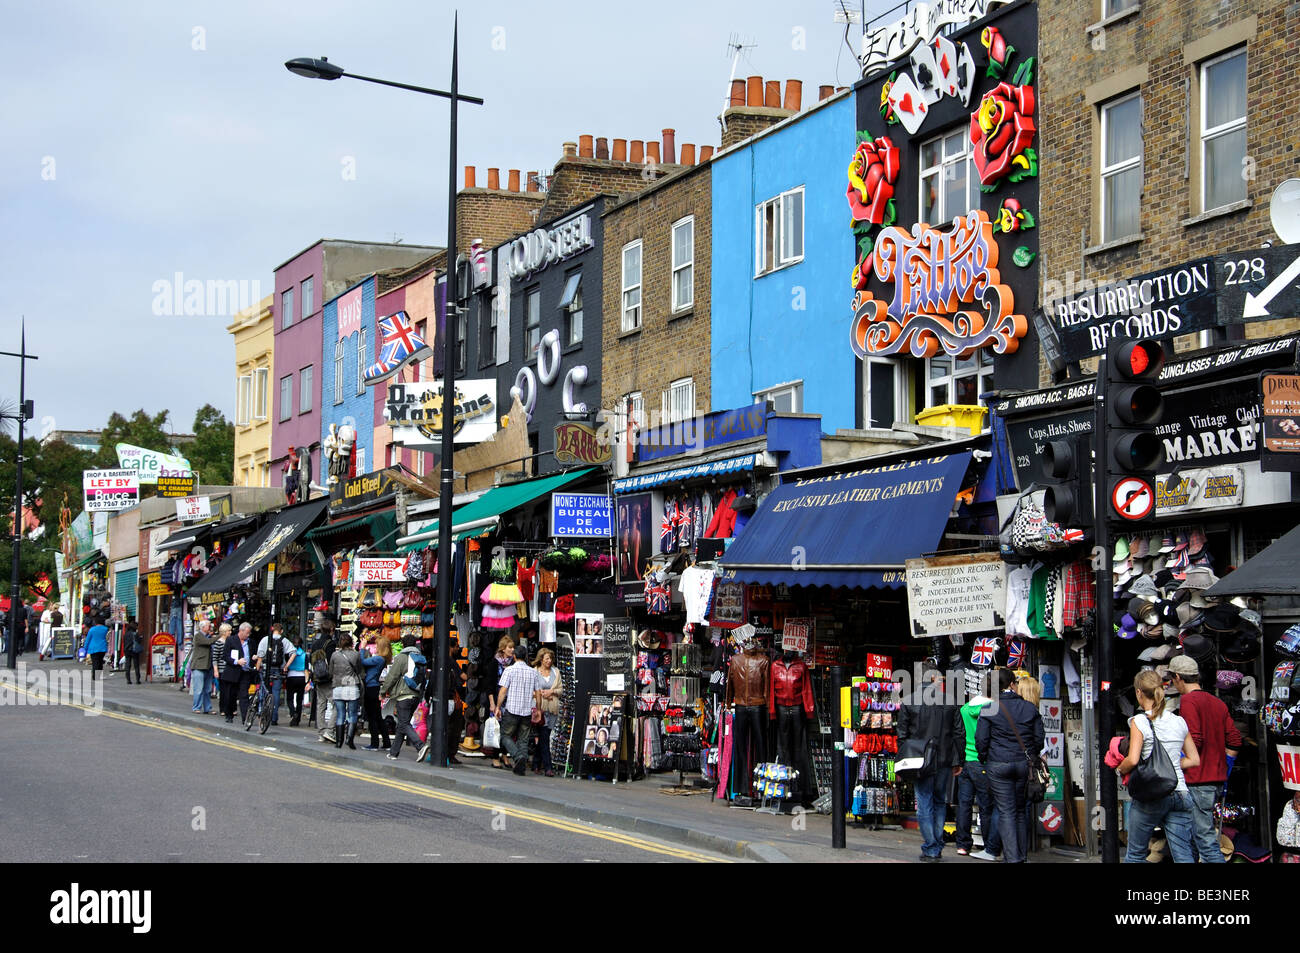 Camden High Street, Camden Town, London Borough of Camden, London, England, United Kingdom - Stock Image